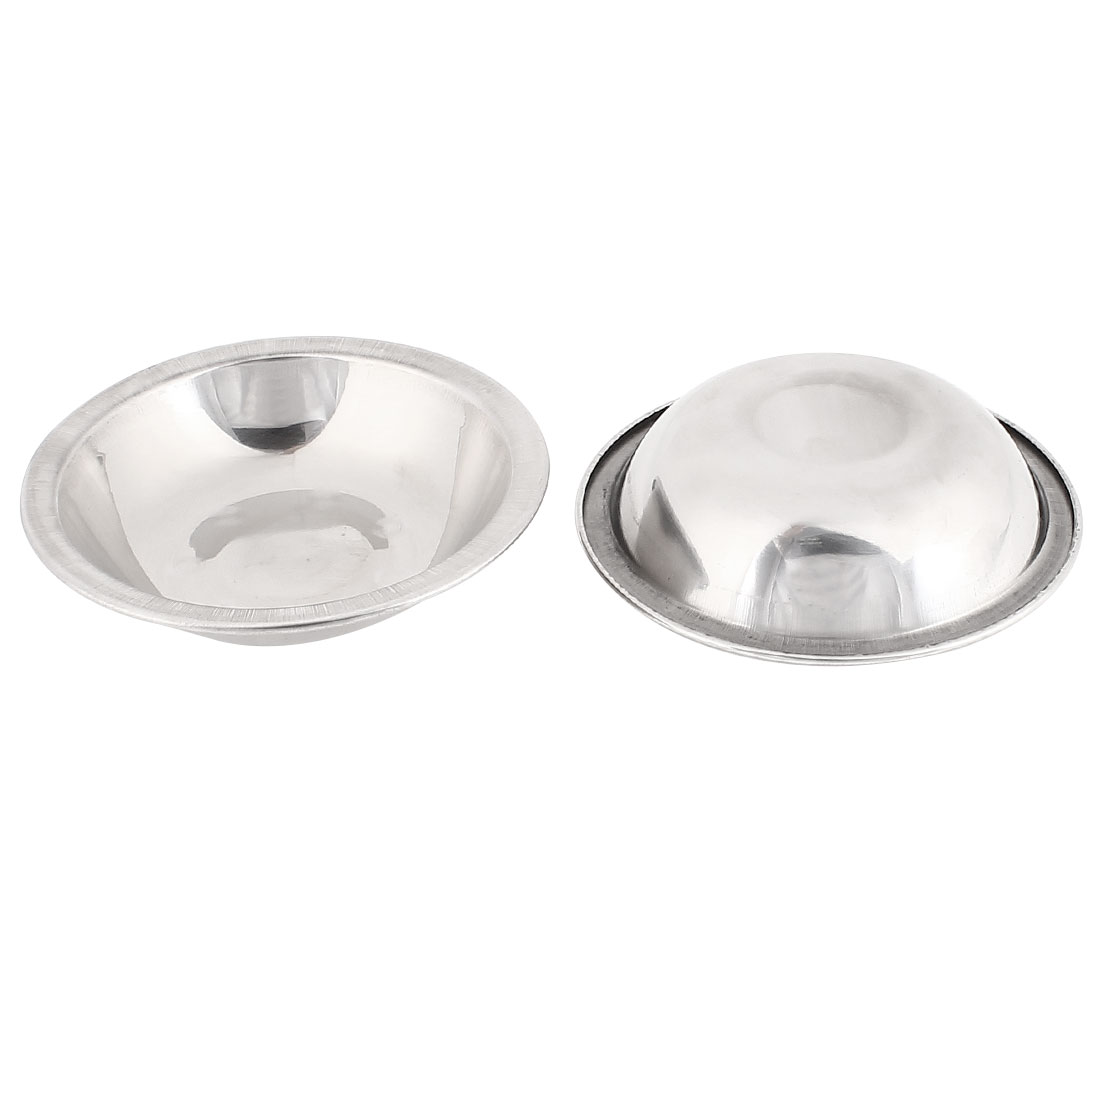 2 Pcs Stainless Steel Round Shaped Mini Peanut Butter Holder Dish Silver Tone